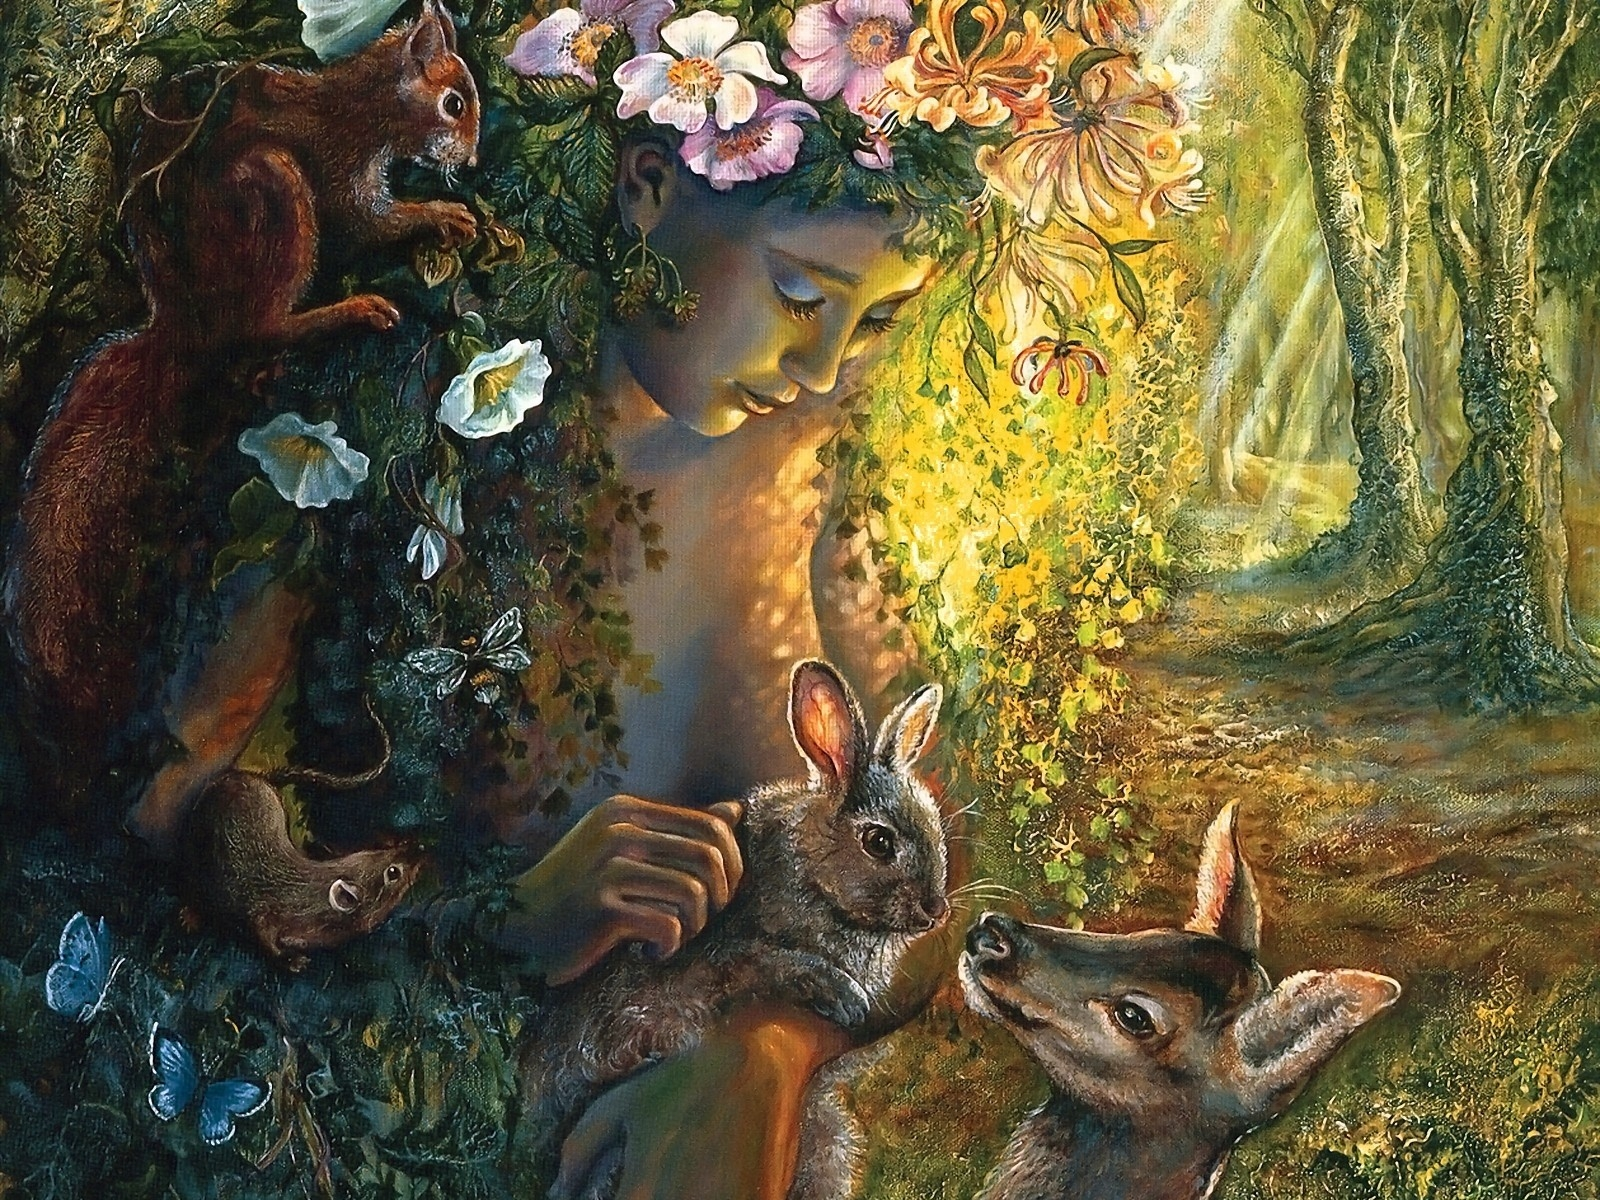 Fantasy - Women  Fantasy Woman Girl Rabbit Deer Squirrel Animal Wallpaper